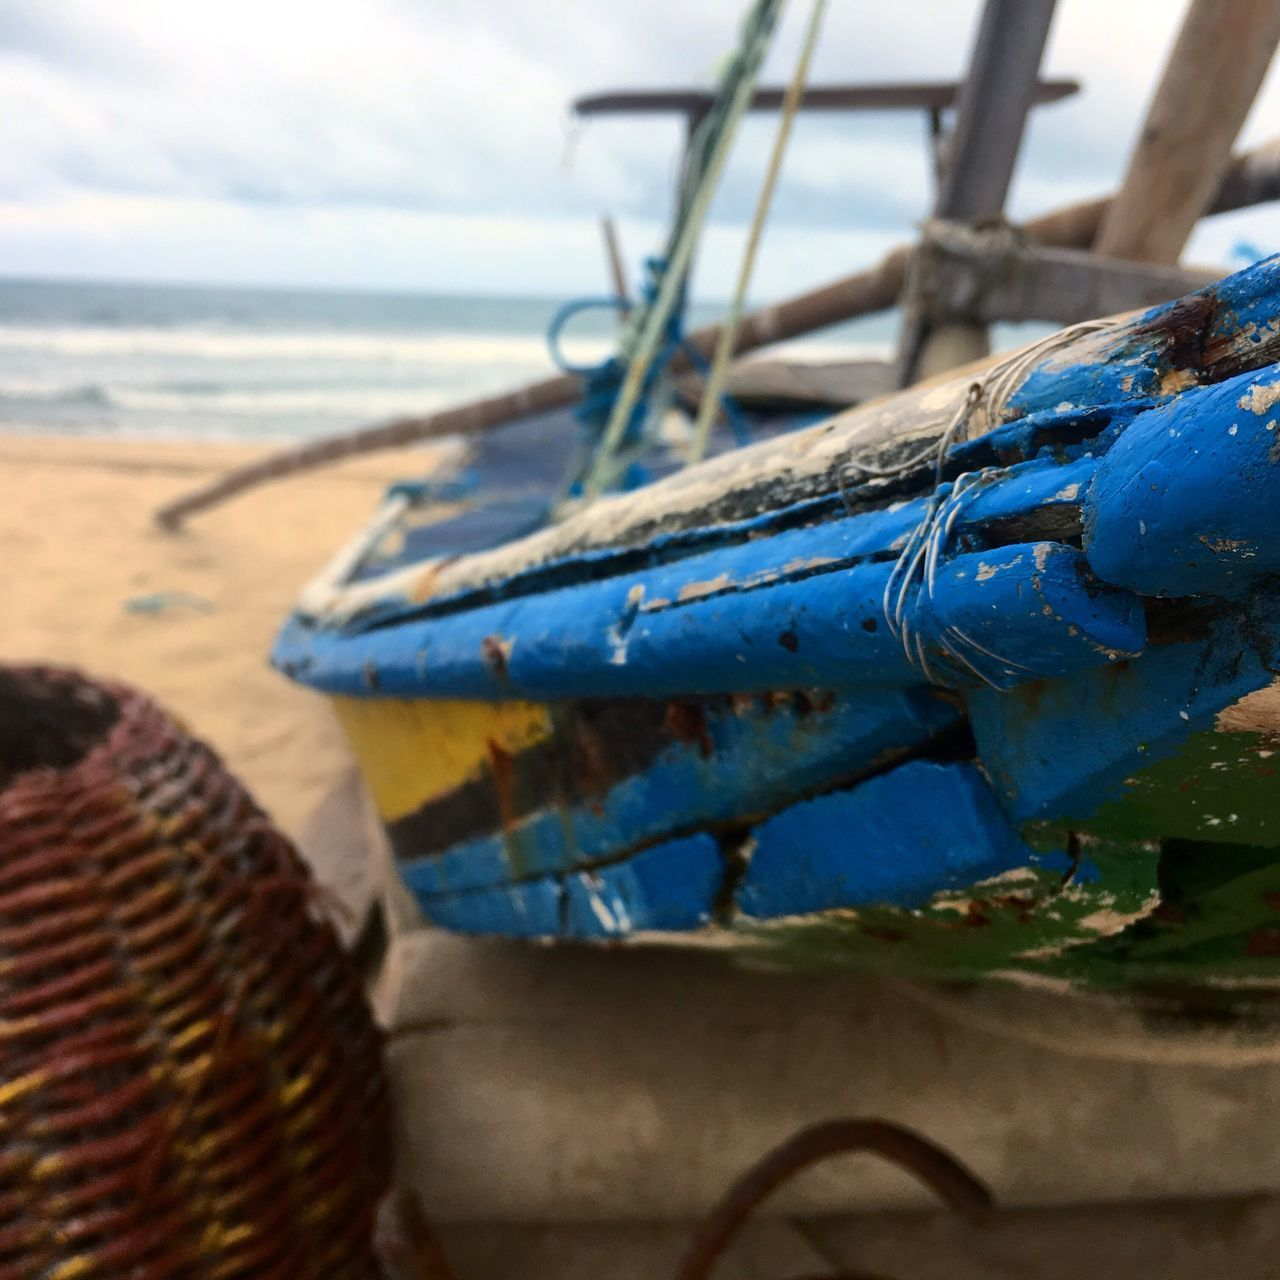 Beach Beachphotography Beach Photography Beachlife Beach Life Beachlovers Beach View Ocean Ocean View Water Sky Sea Close-up Outdoors Wood - Material Day Fishing Fishing Boat Fishing Boats Sailboat Sailboats Colorful Focus On Foreground